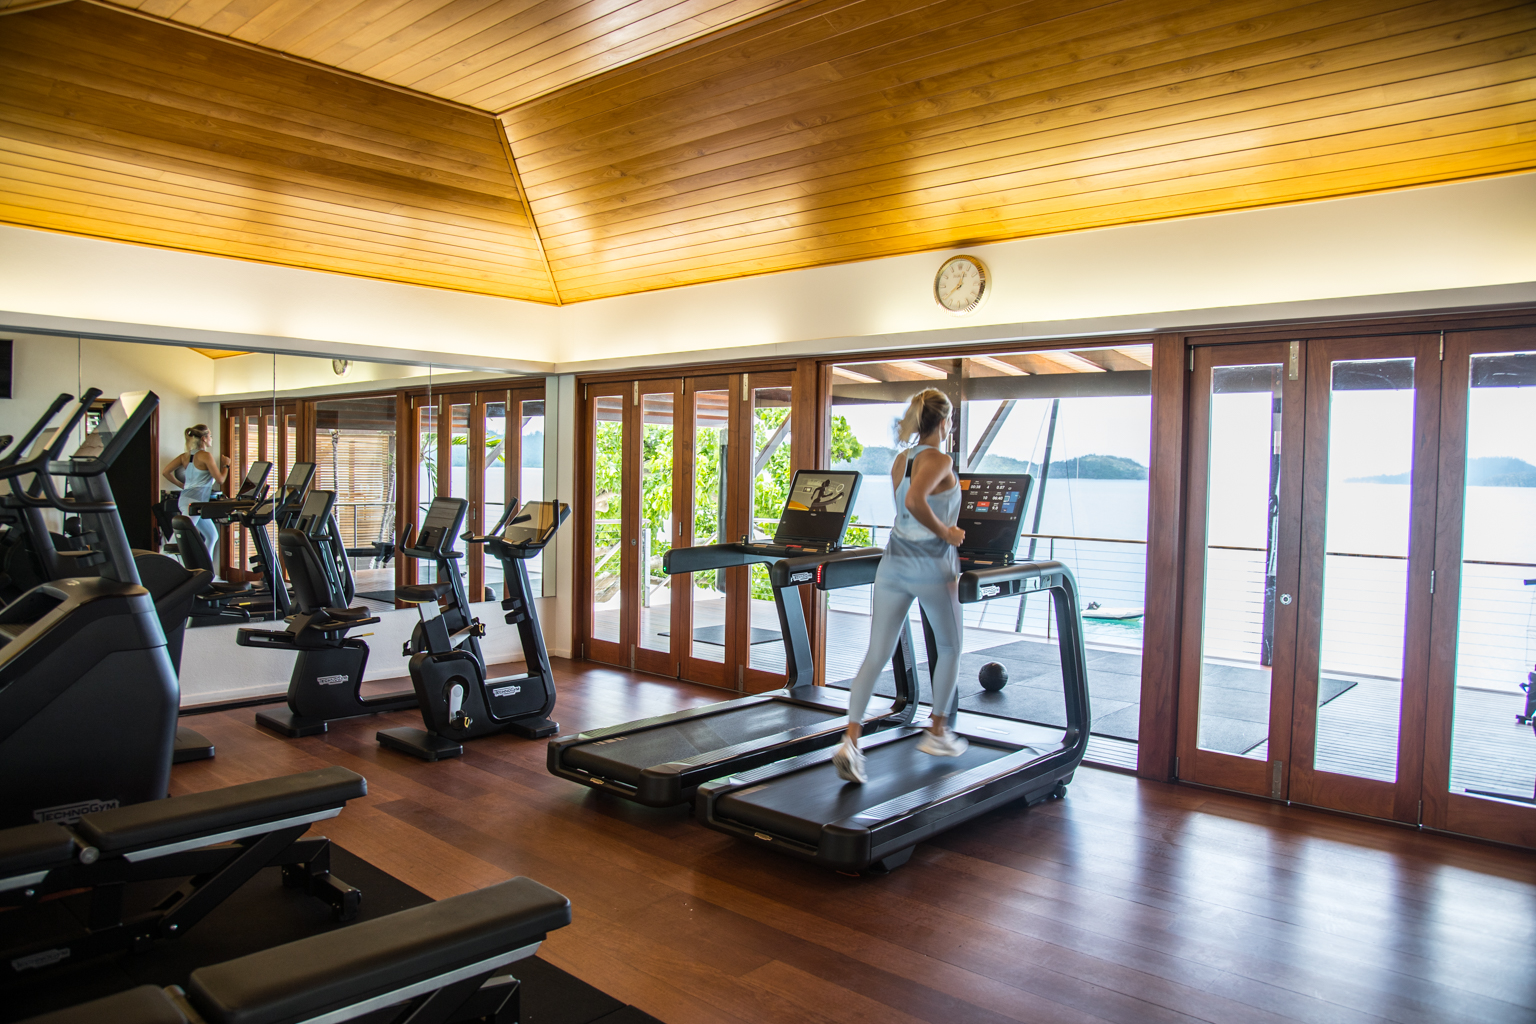 Fitness On Toast Faya Blog Girl Healthy Workout Training Active Escape Travel Australia Hamilton Island Qualia Resort Luxury Health Trip-44